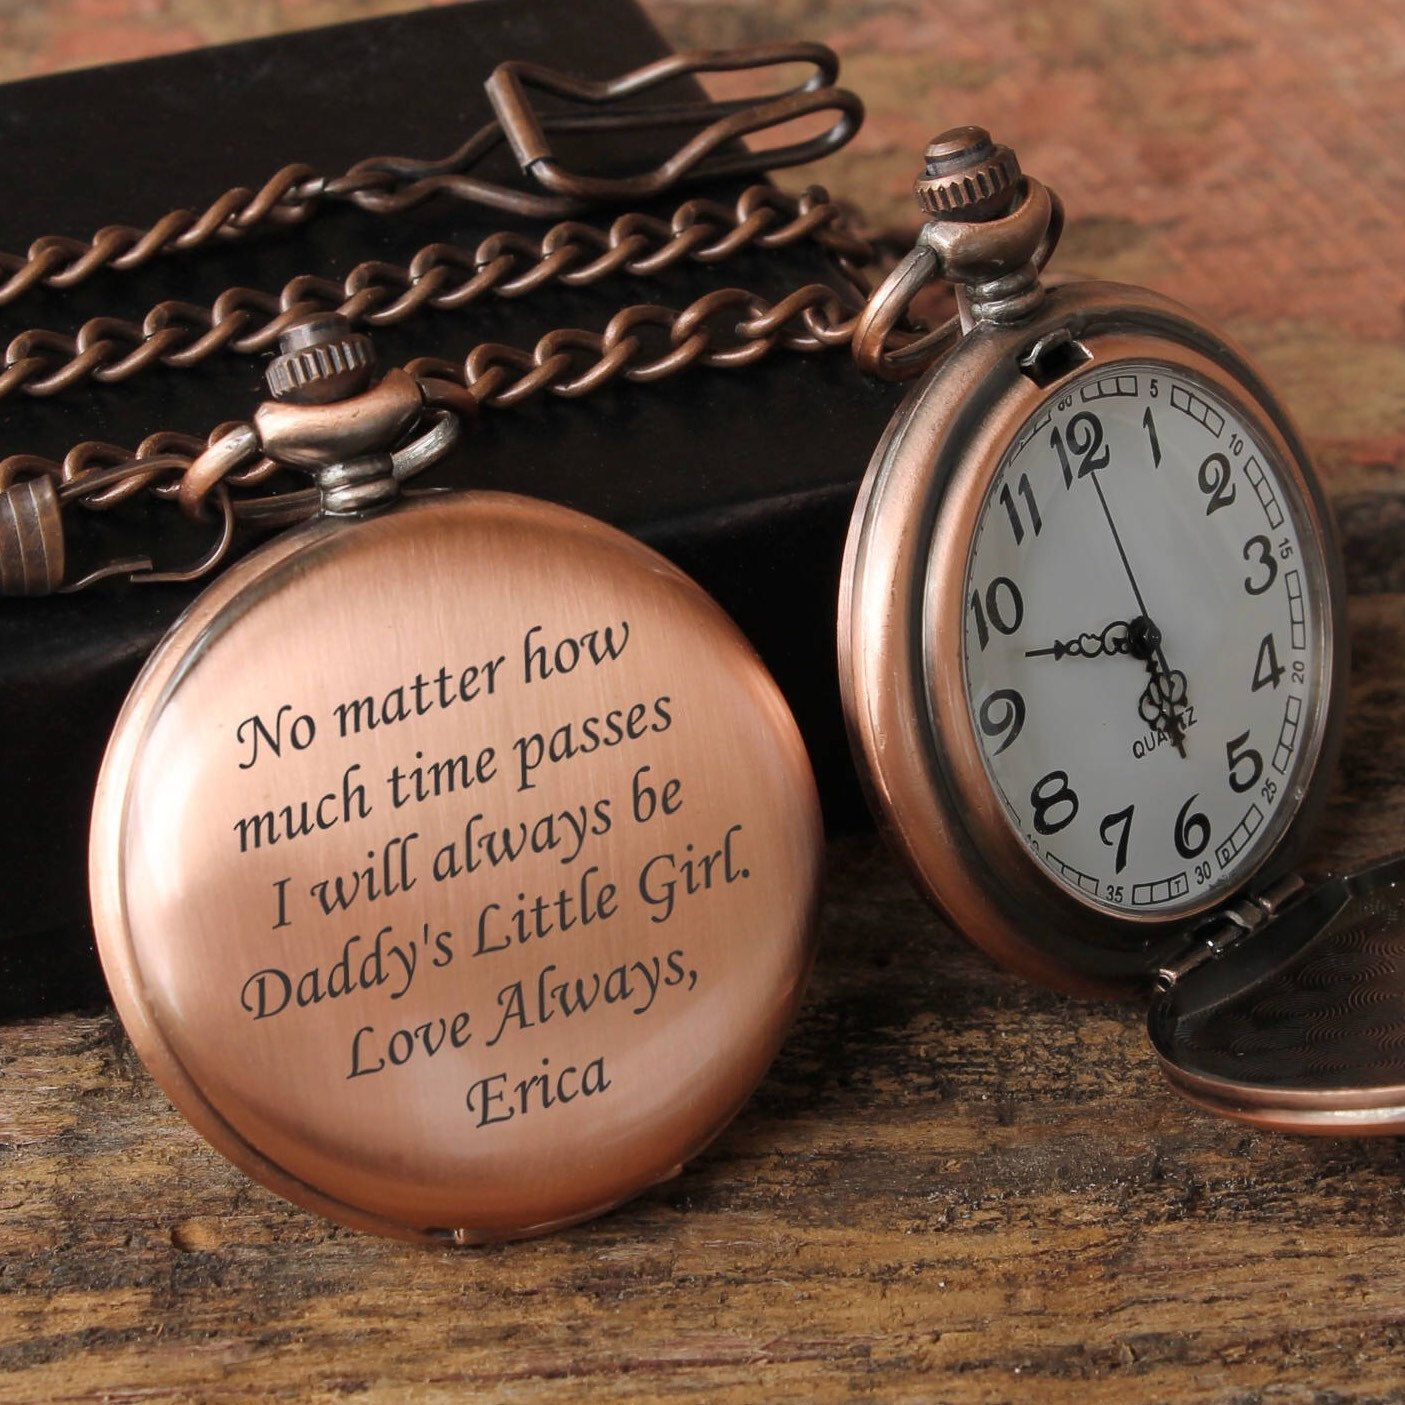 00922ebf0 Personalized Men's pocket watch! Perfect Father's Day gift! Customize with  your own special message!